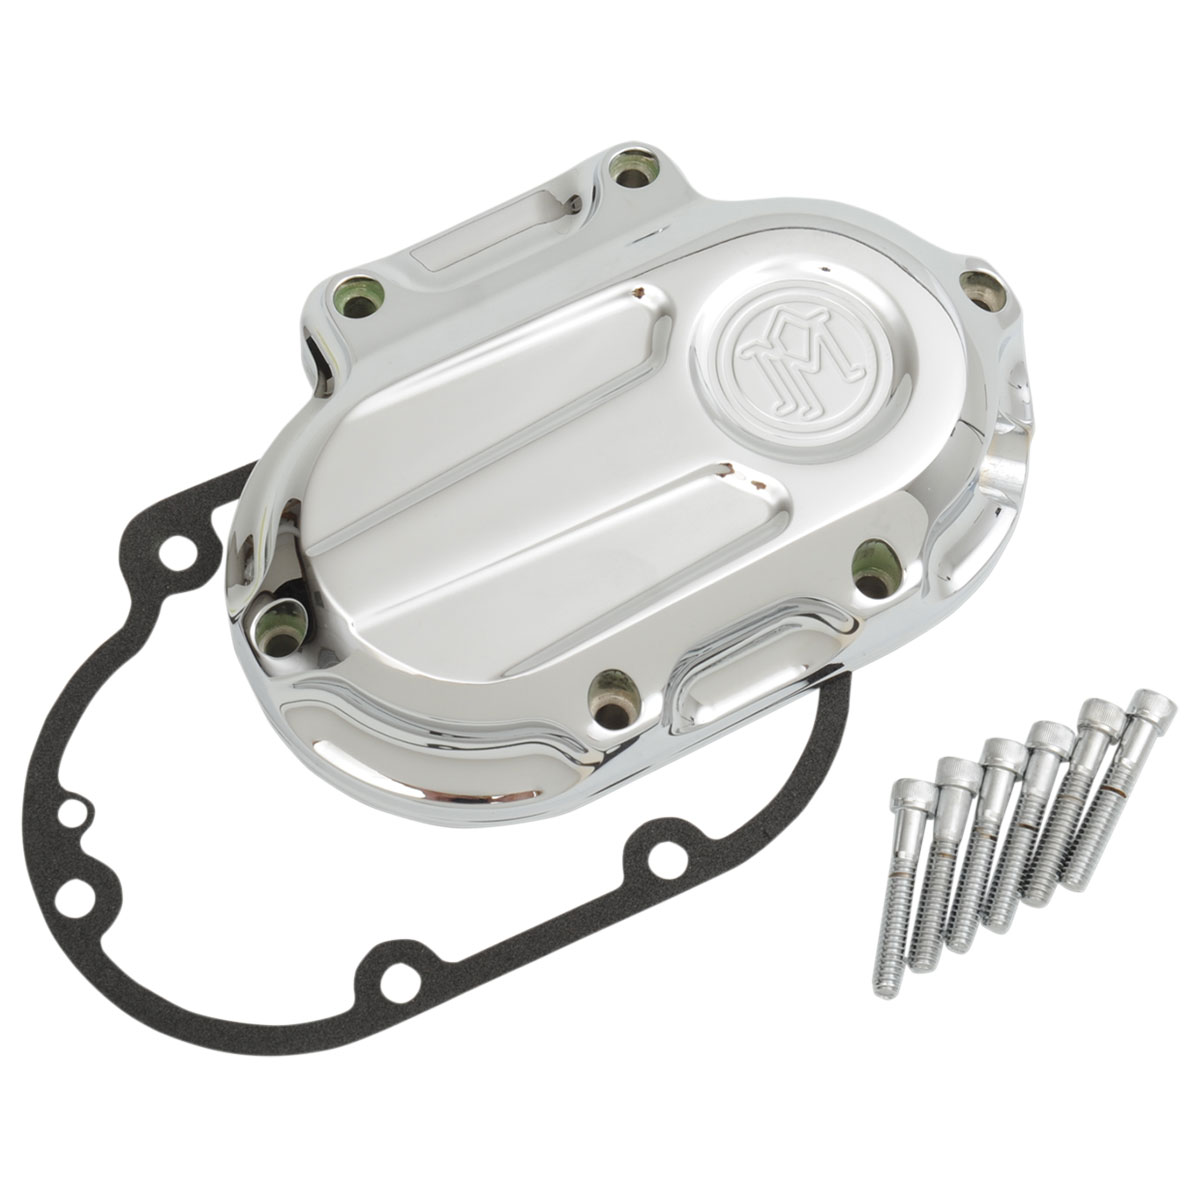 Performance Machine Scallop Chrome 6-Speed Transmission Side Cover